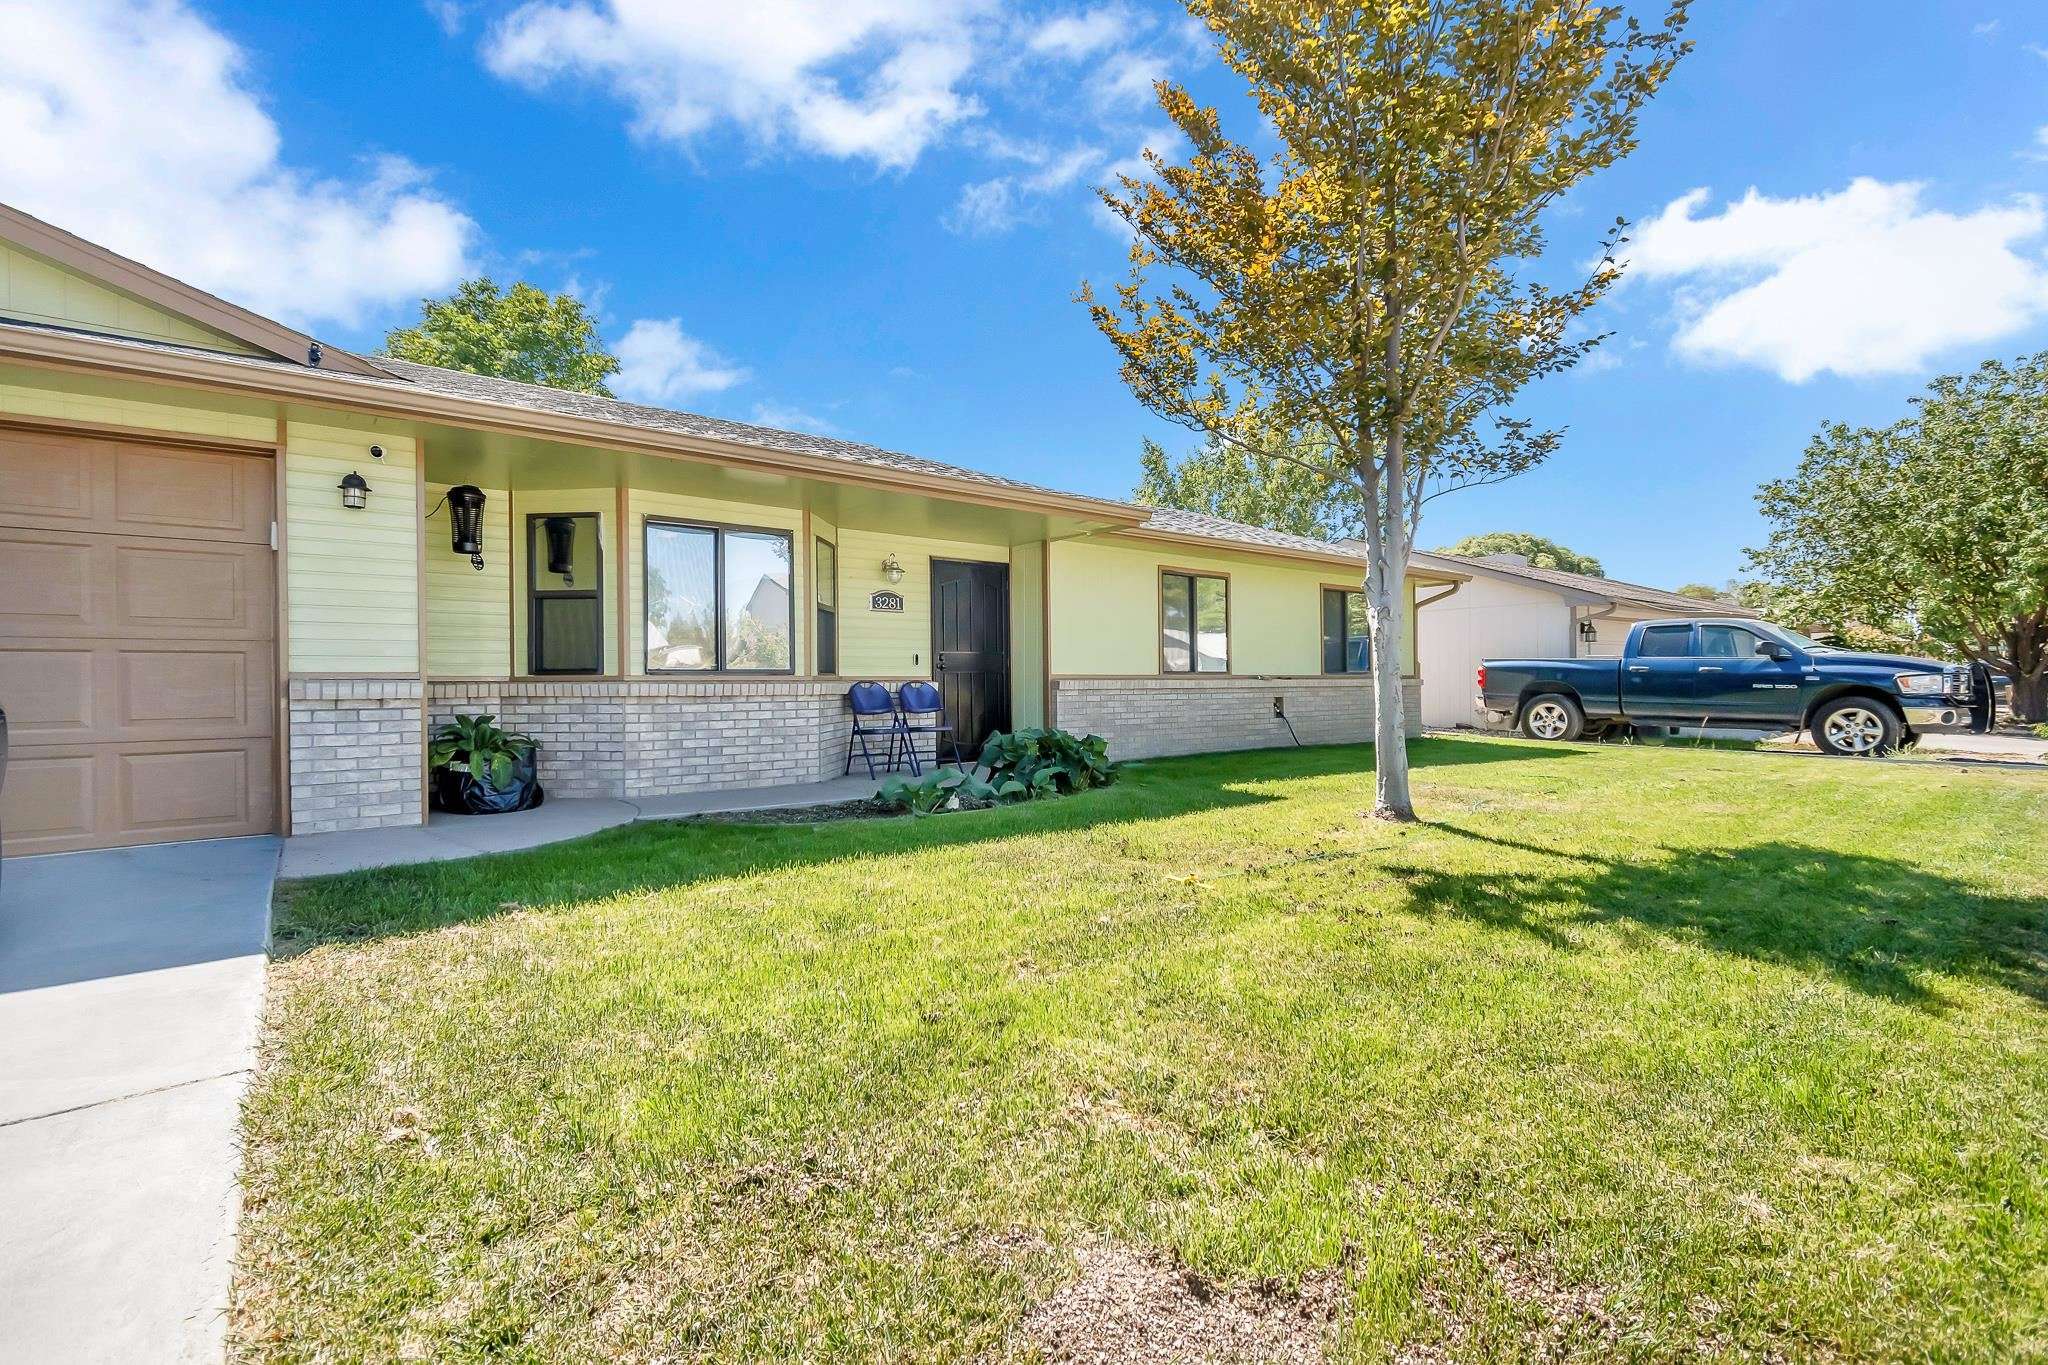 Amazing 3 Bed/2 Bath ranch styled home nestled in a cul-de-sac with tons of upgrades. Owned Solar Panels, Enormous Wooden Privacy Fence, New kitchen appliances, New Roof, New Paint etc. NO HOA and Irrigation water .  Schedule your showing today